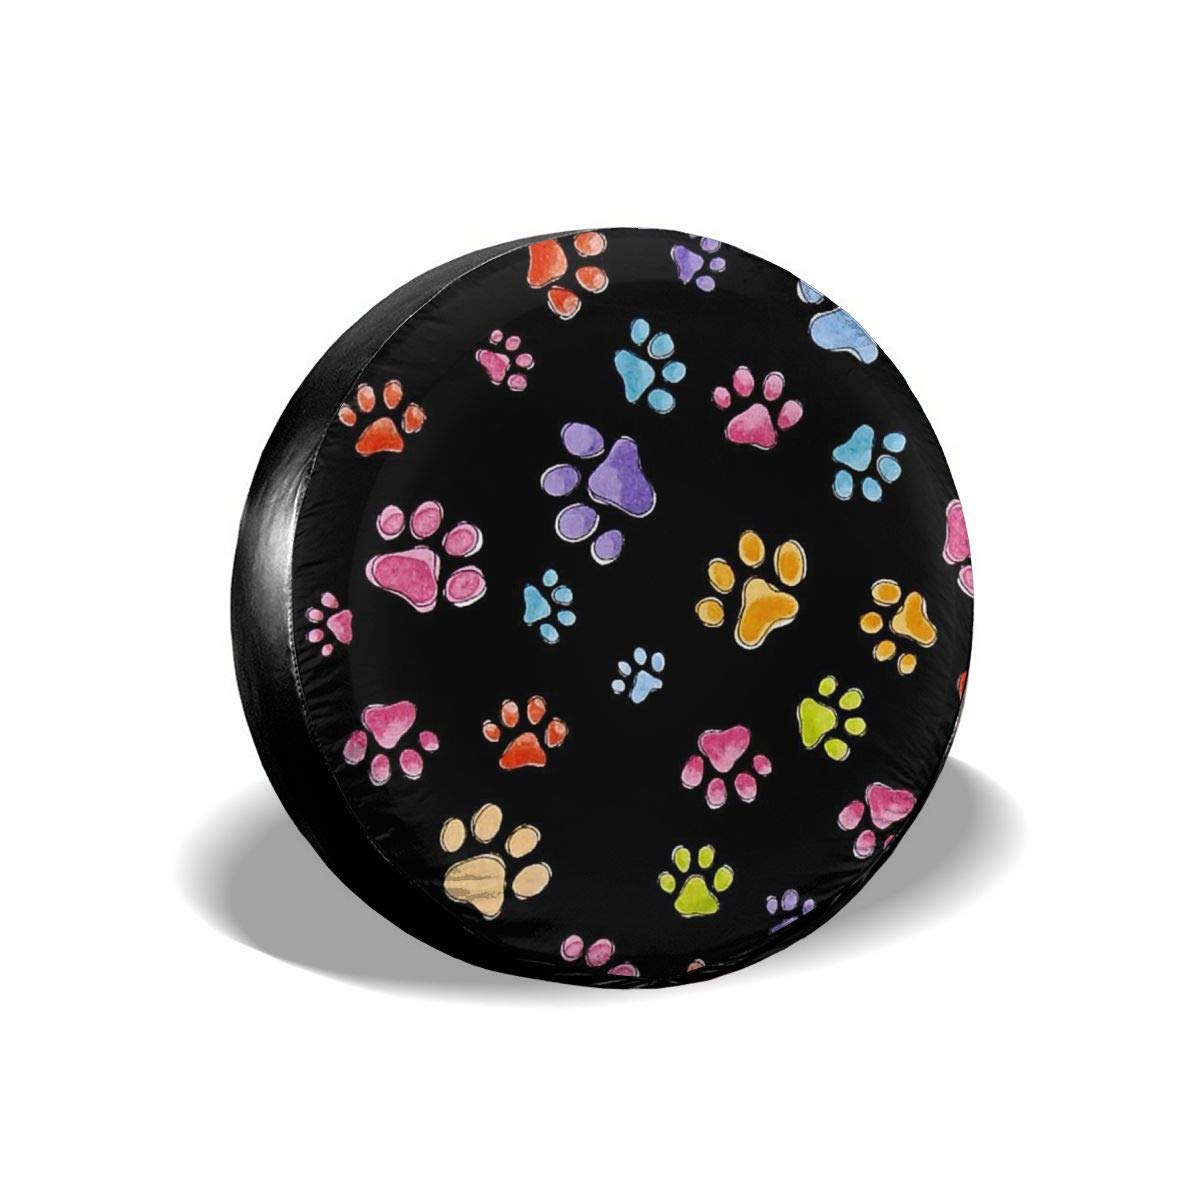 Dog Went Pawful Paws Tire Covers Tire Sun Protectors Truck Wheel Cover Tire Diameters 14,15,16,17 Inch